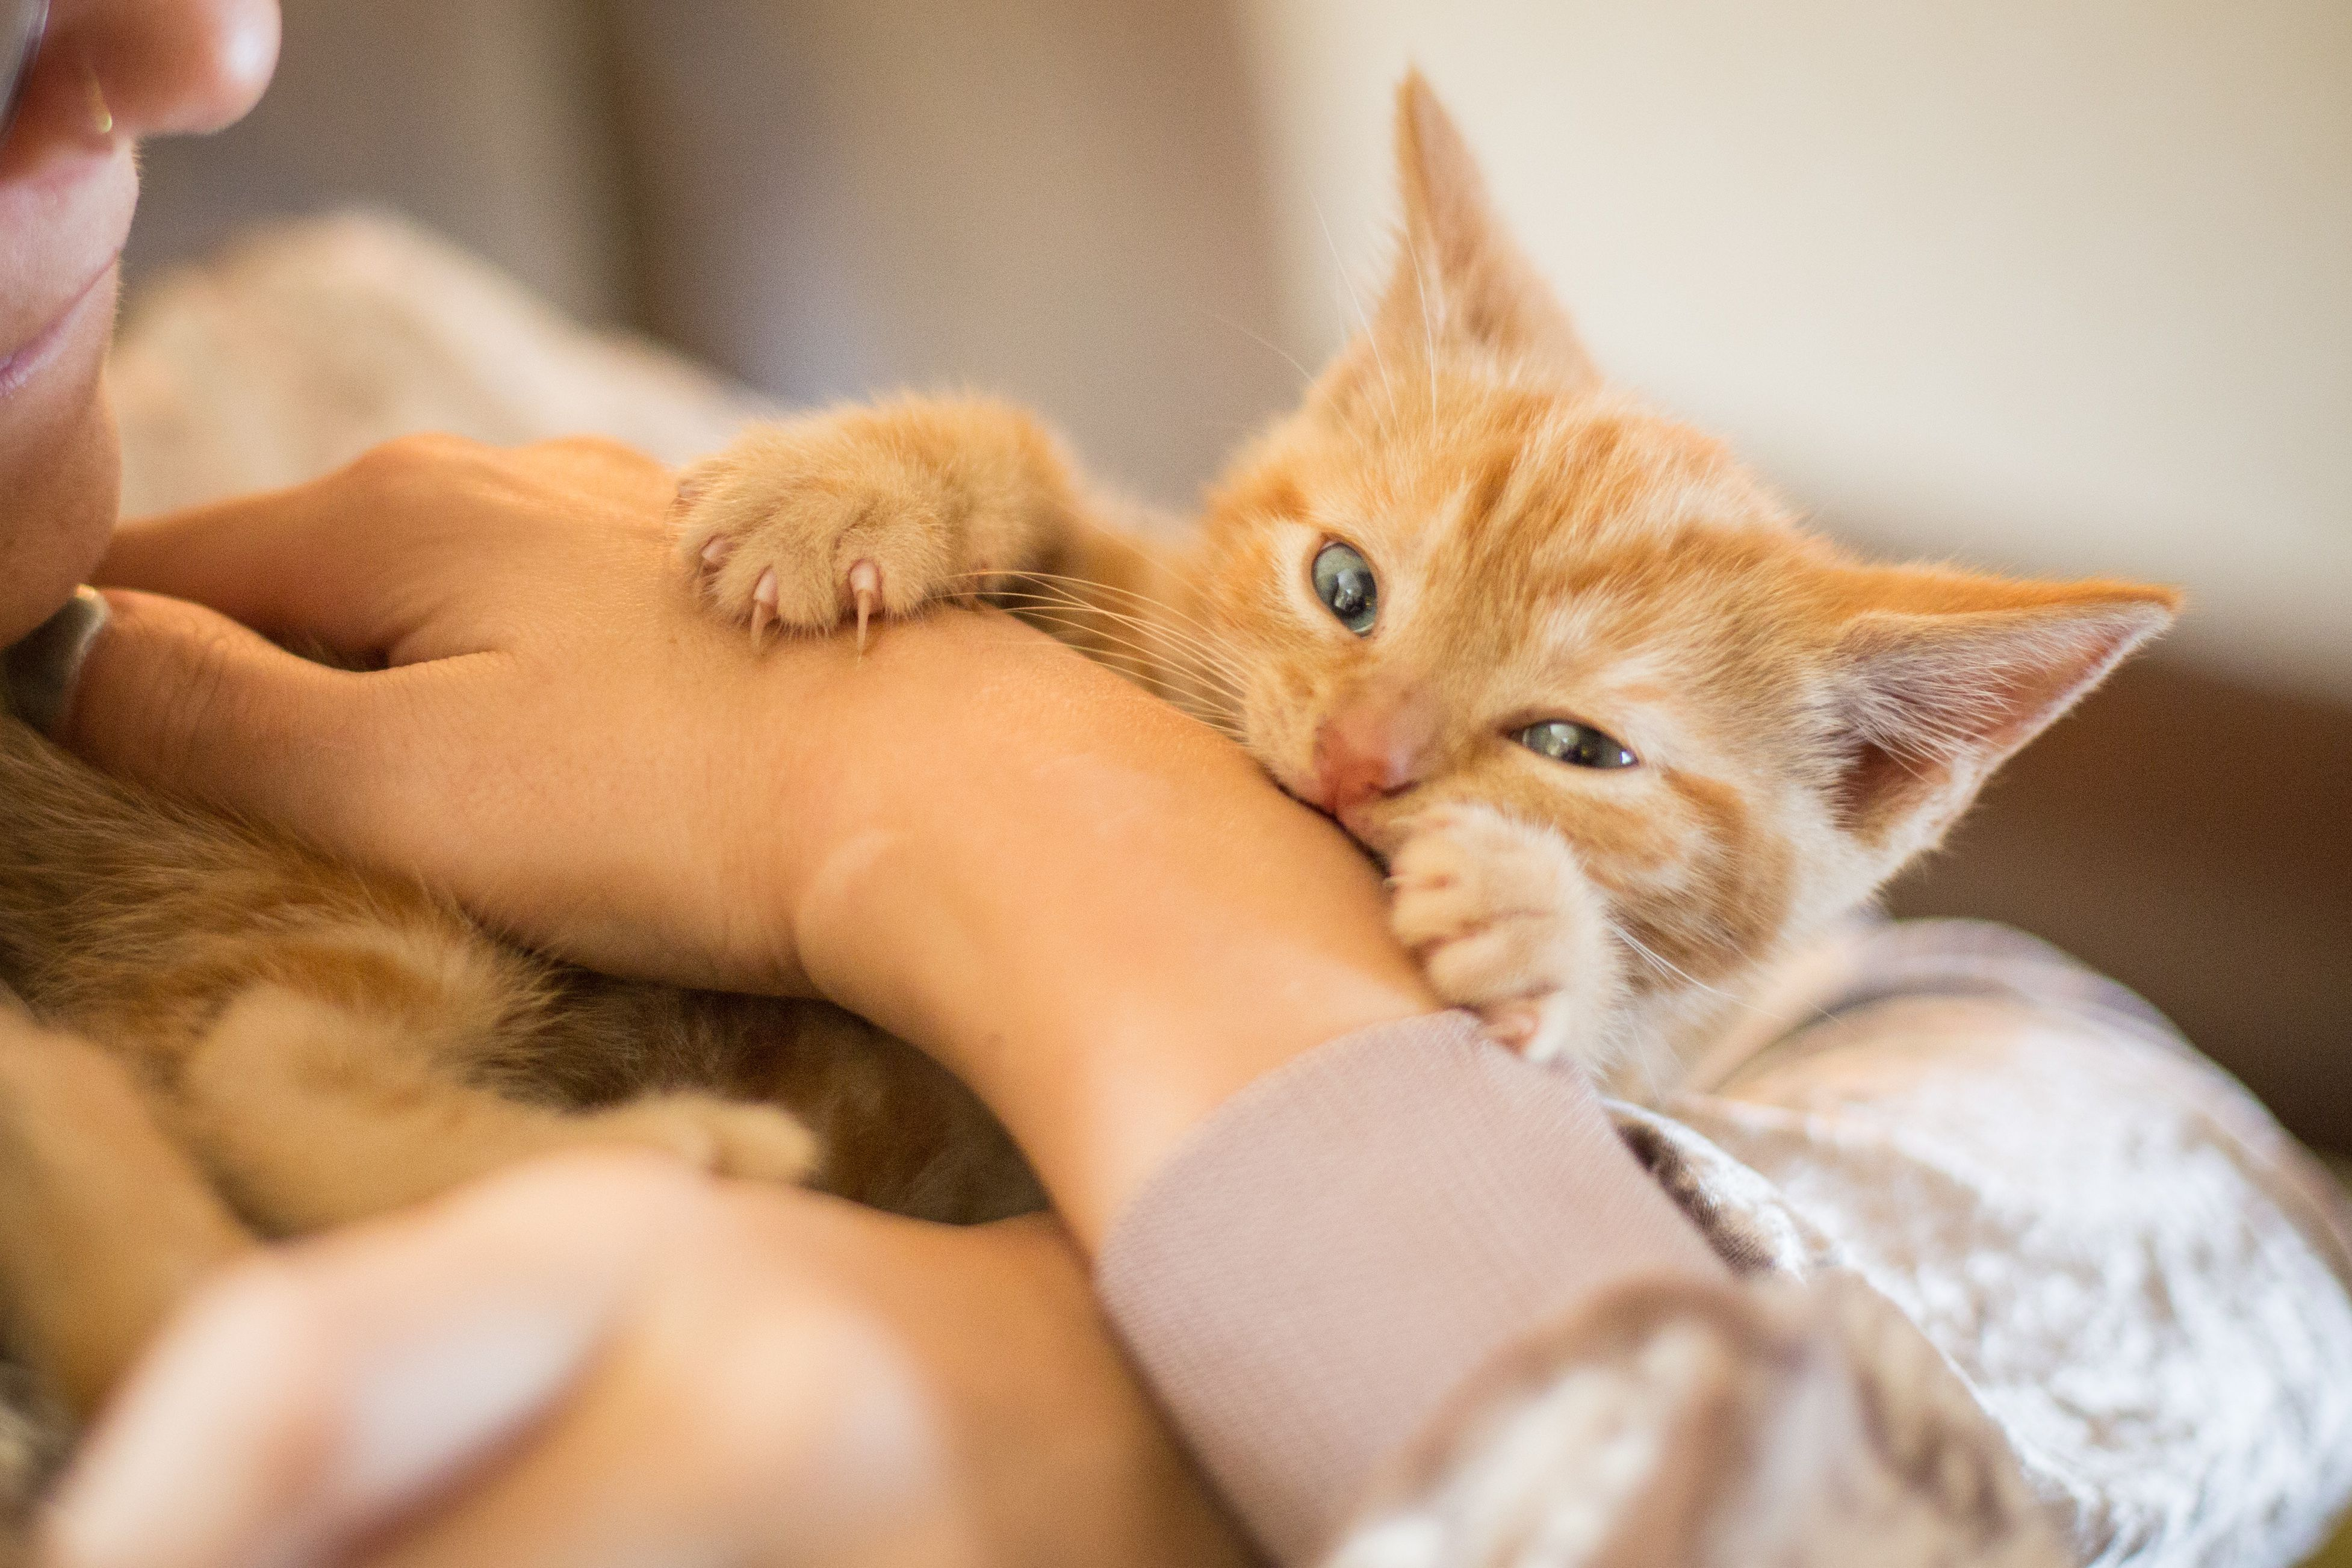 Aggressive Kittens Can Be A Problem But Scratching And Biting In Kittens Can Be Controlled With Training And Patience Cat Biting Kitten Biting Kittens